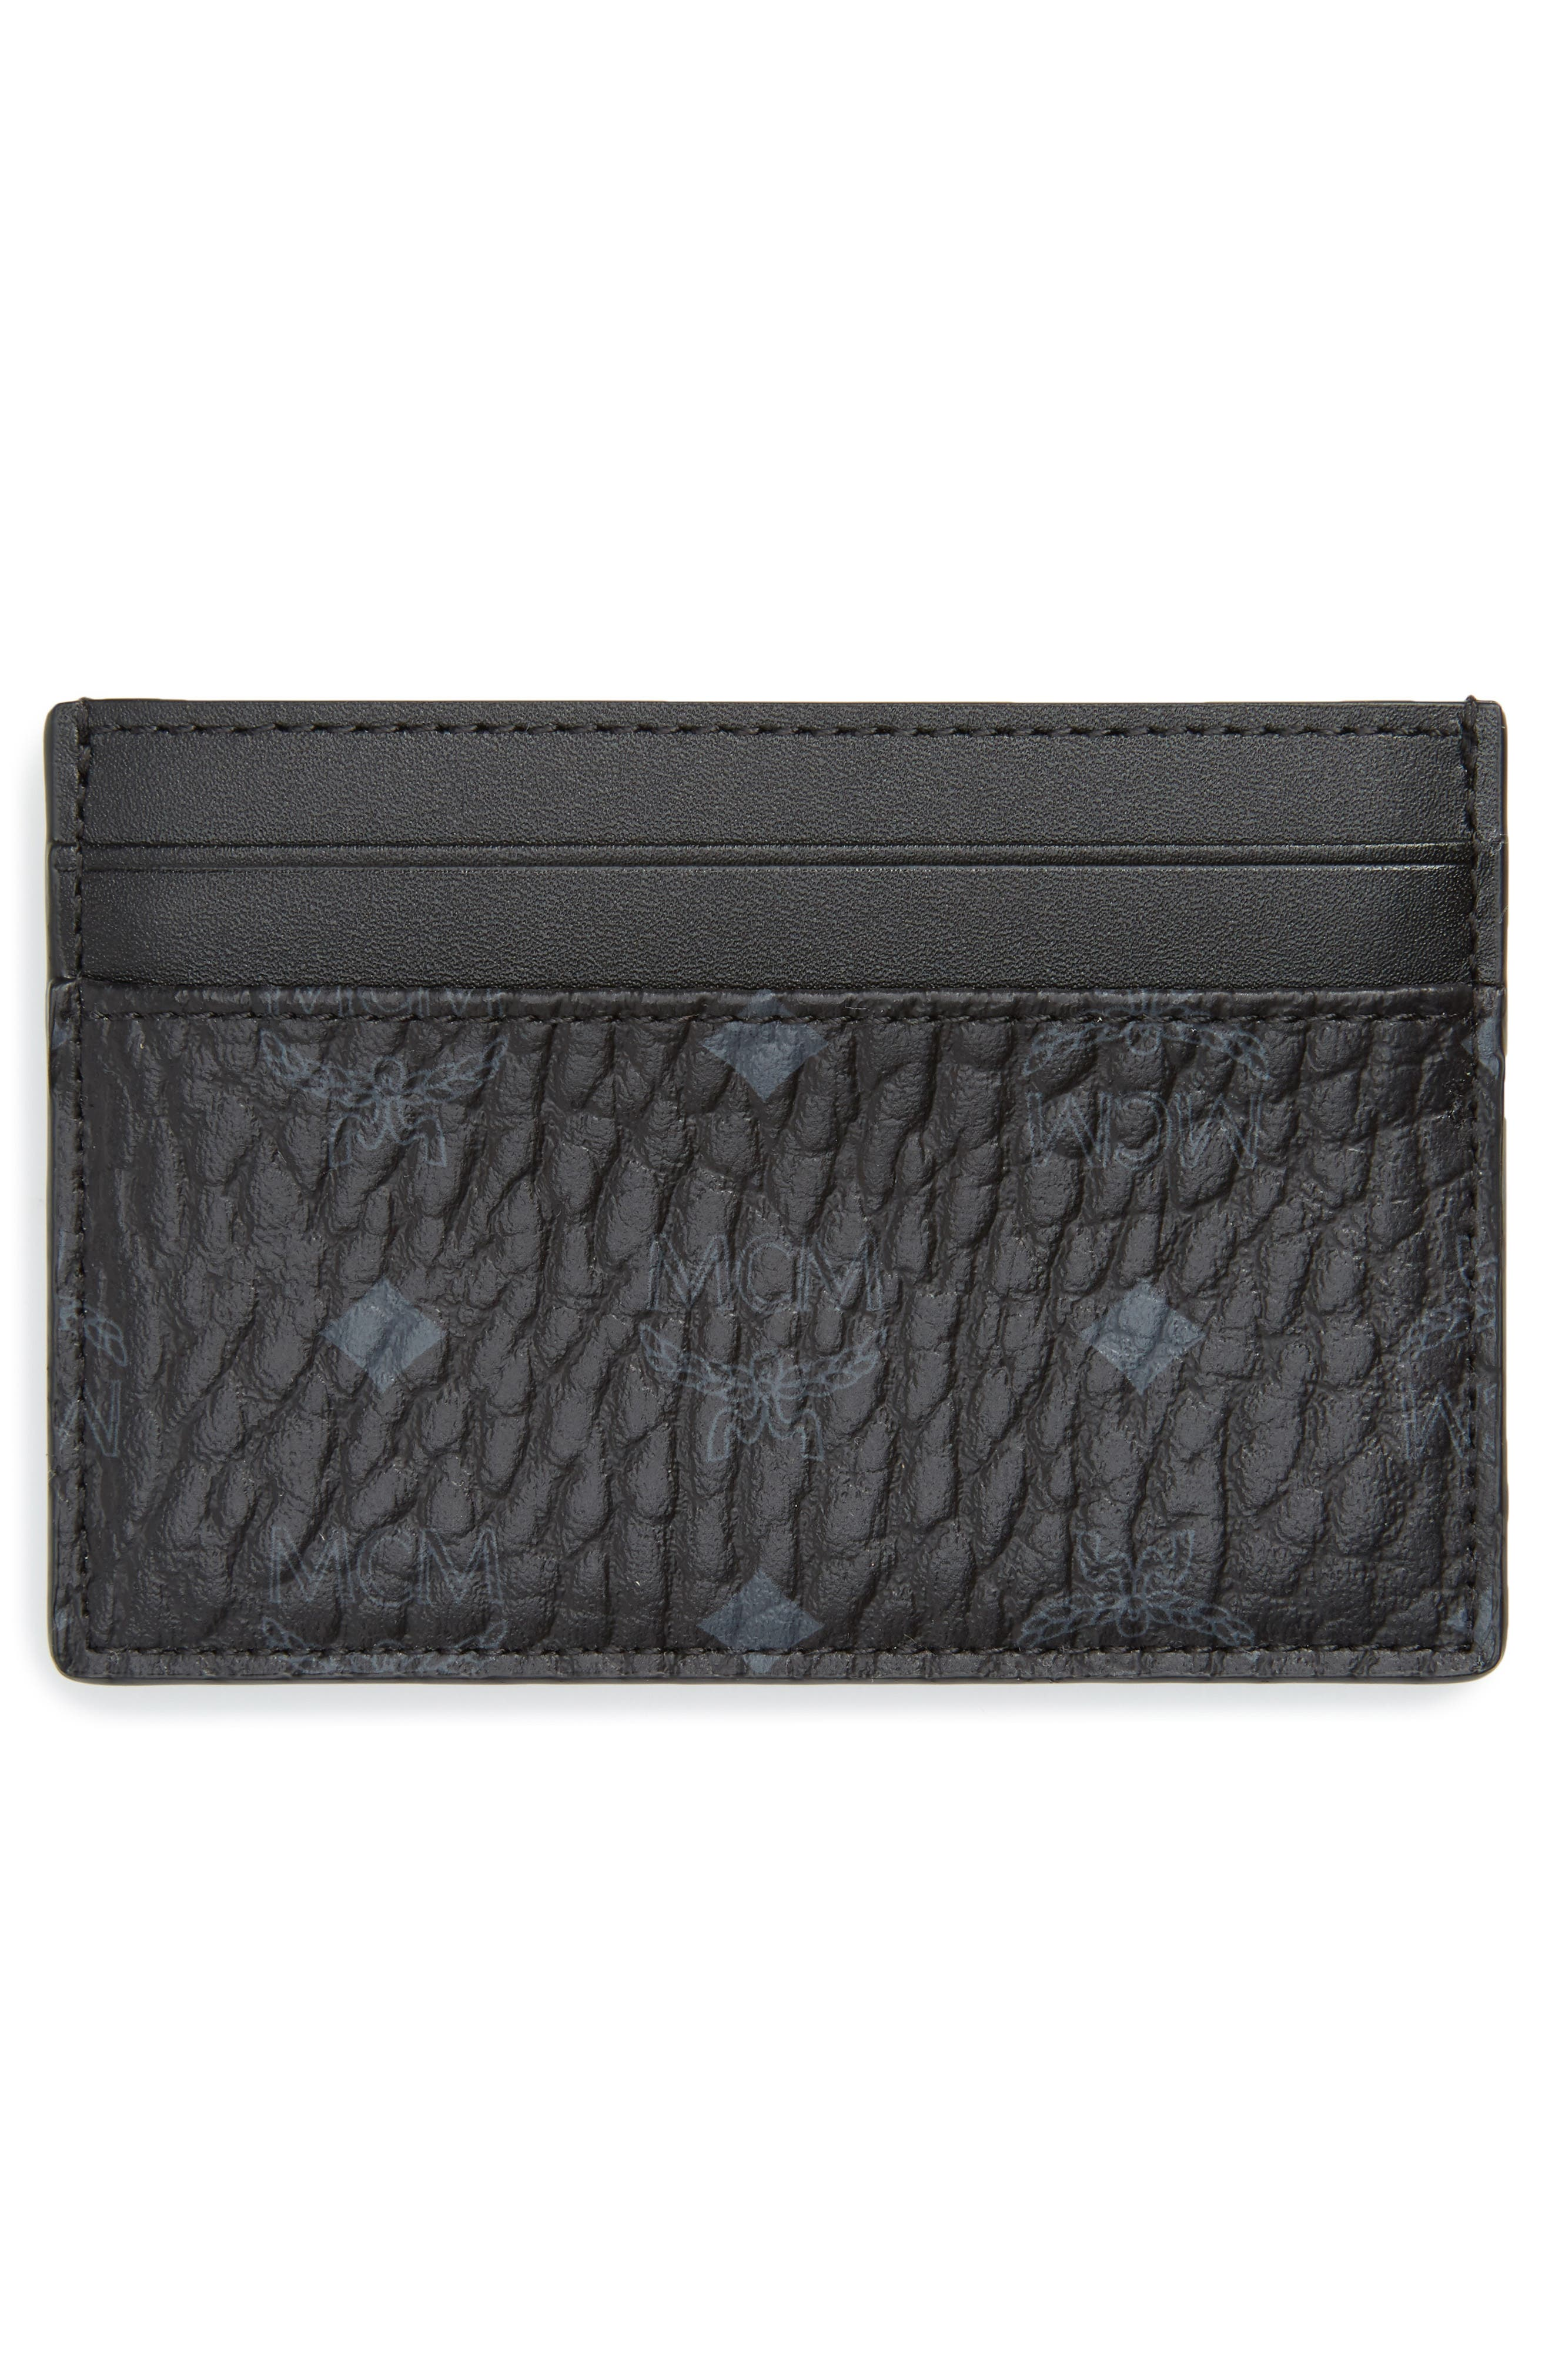 Logo Leather Card Case,                             Alternate thumbnail 2, color,                             BLACK